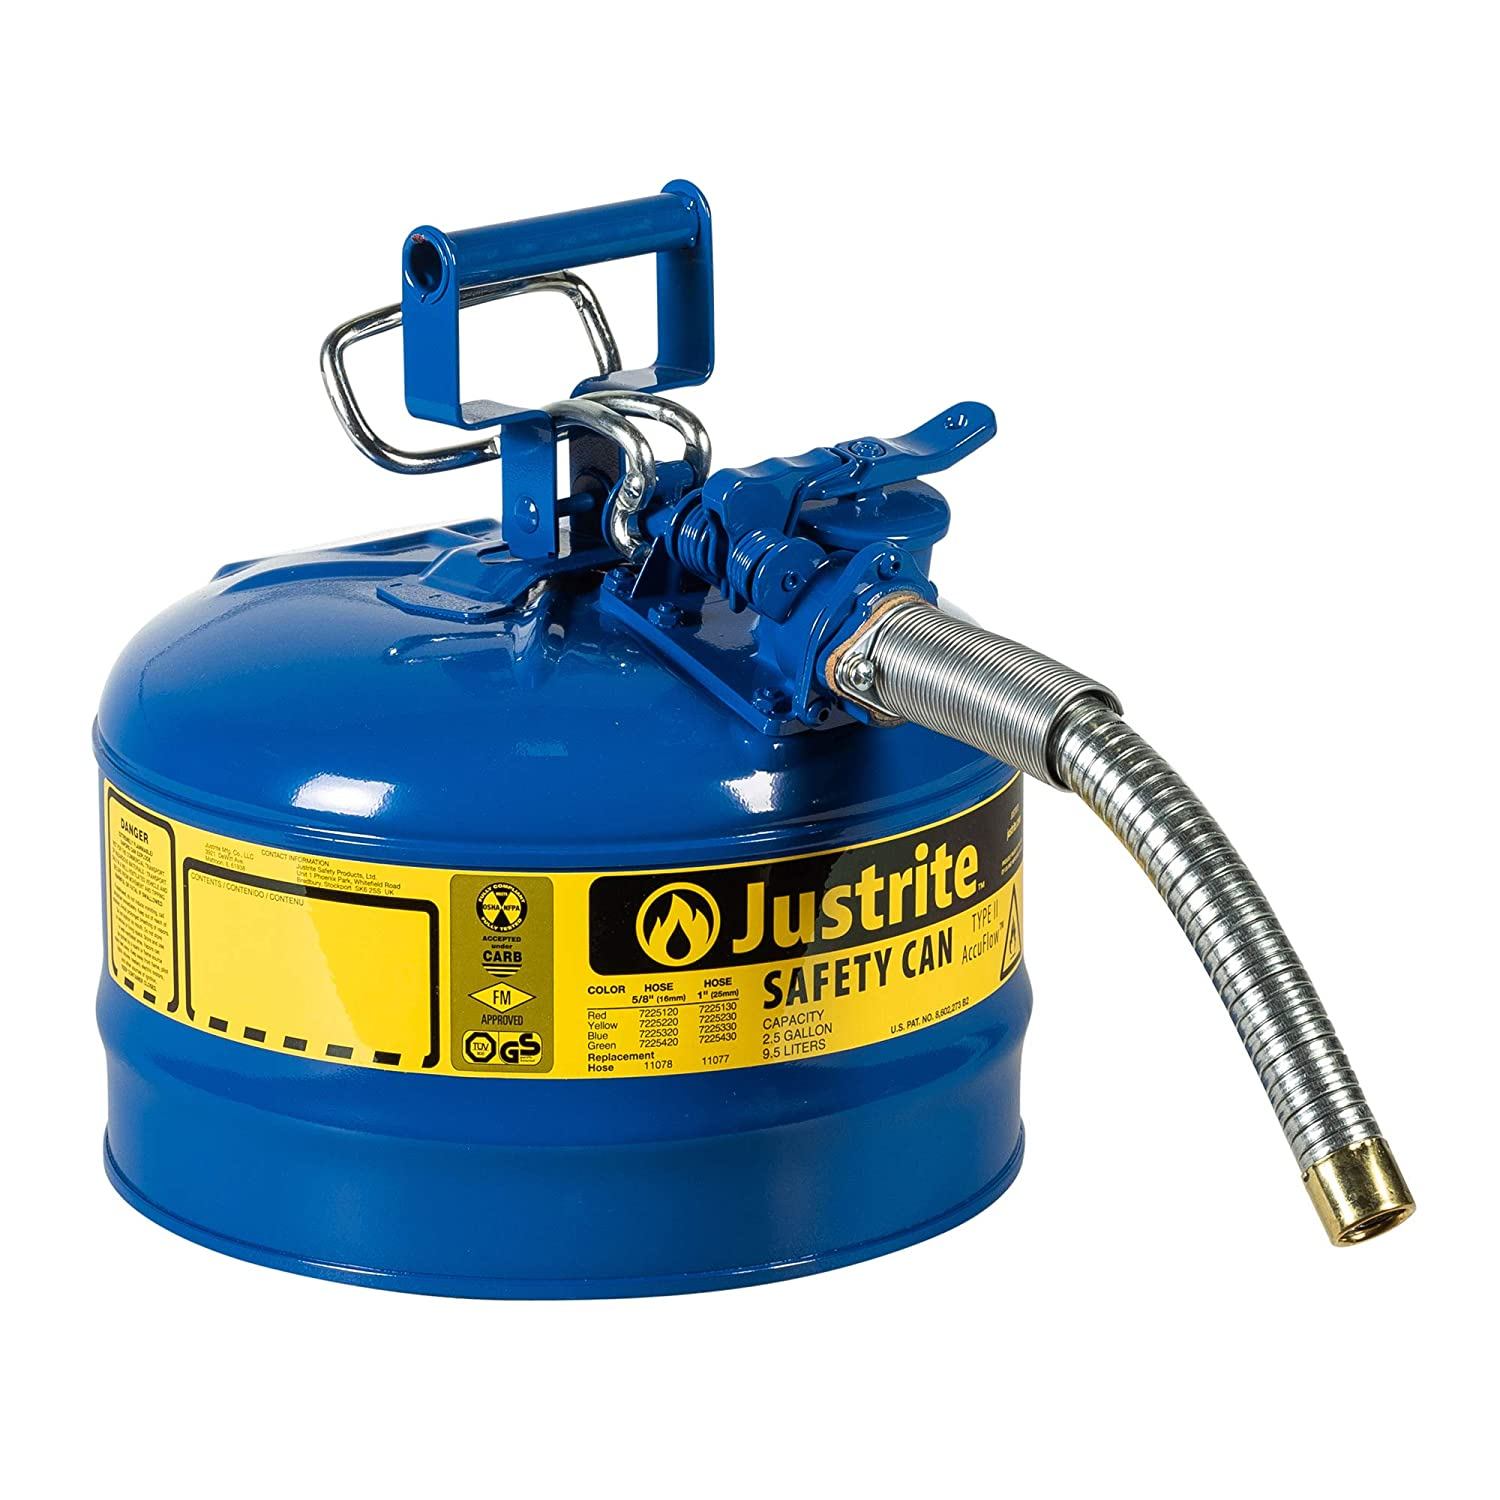 Justrite AccuFlow 7225330 Type II Galvanized Steel Safety Can with 1 Flexible Spout 2.5 Gallon Capacity Blue